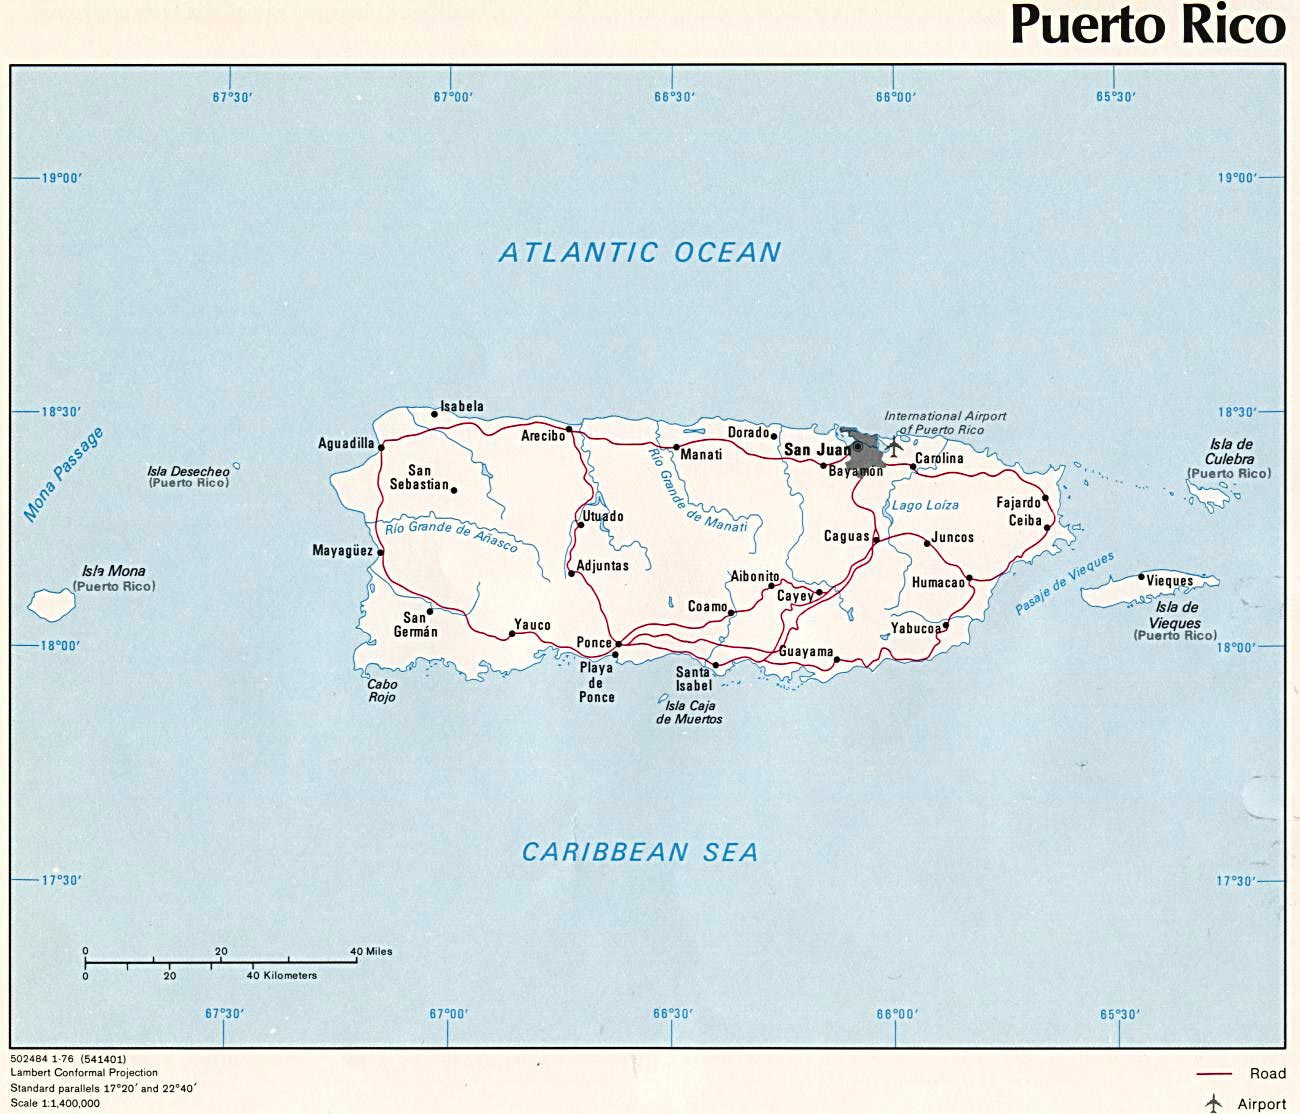 Puerto Rico Maps | Printable Maps of Puerto Rico for Download